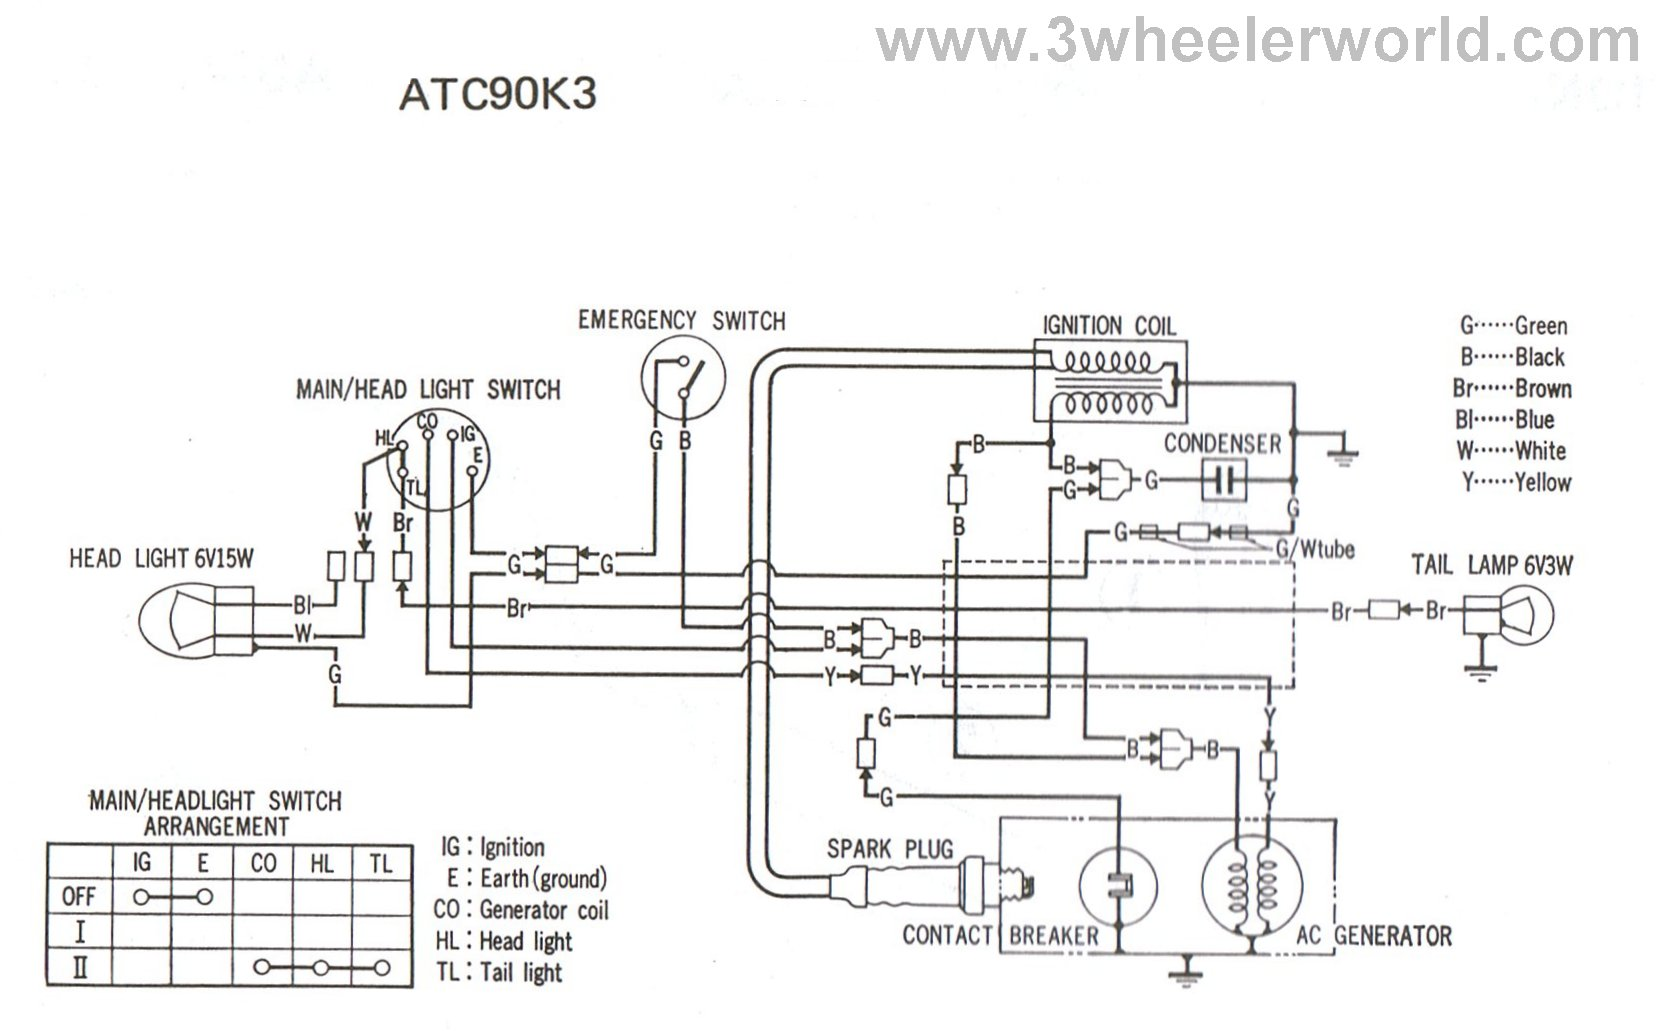 ATC90K3HM 3 wheeler world tech help honda wiring diagrams 1988 polaris trail boss 250 wiring diagram at edmiracle.co